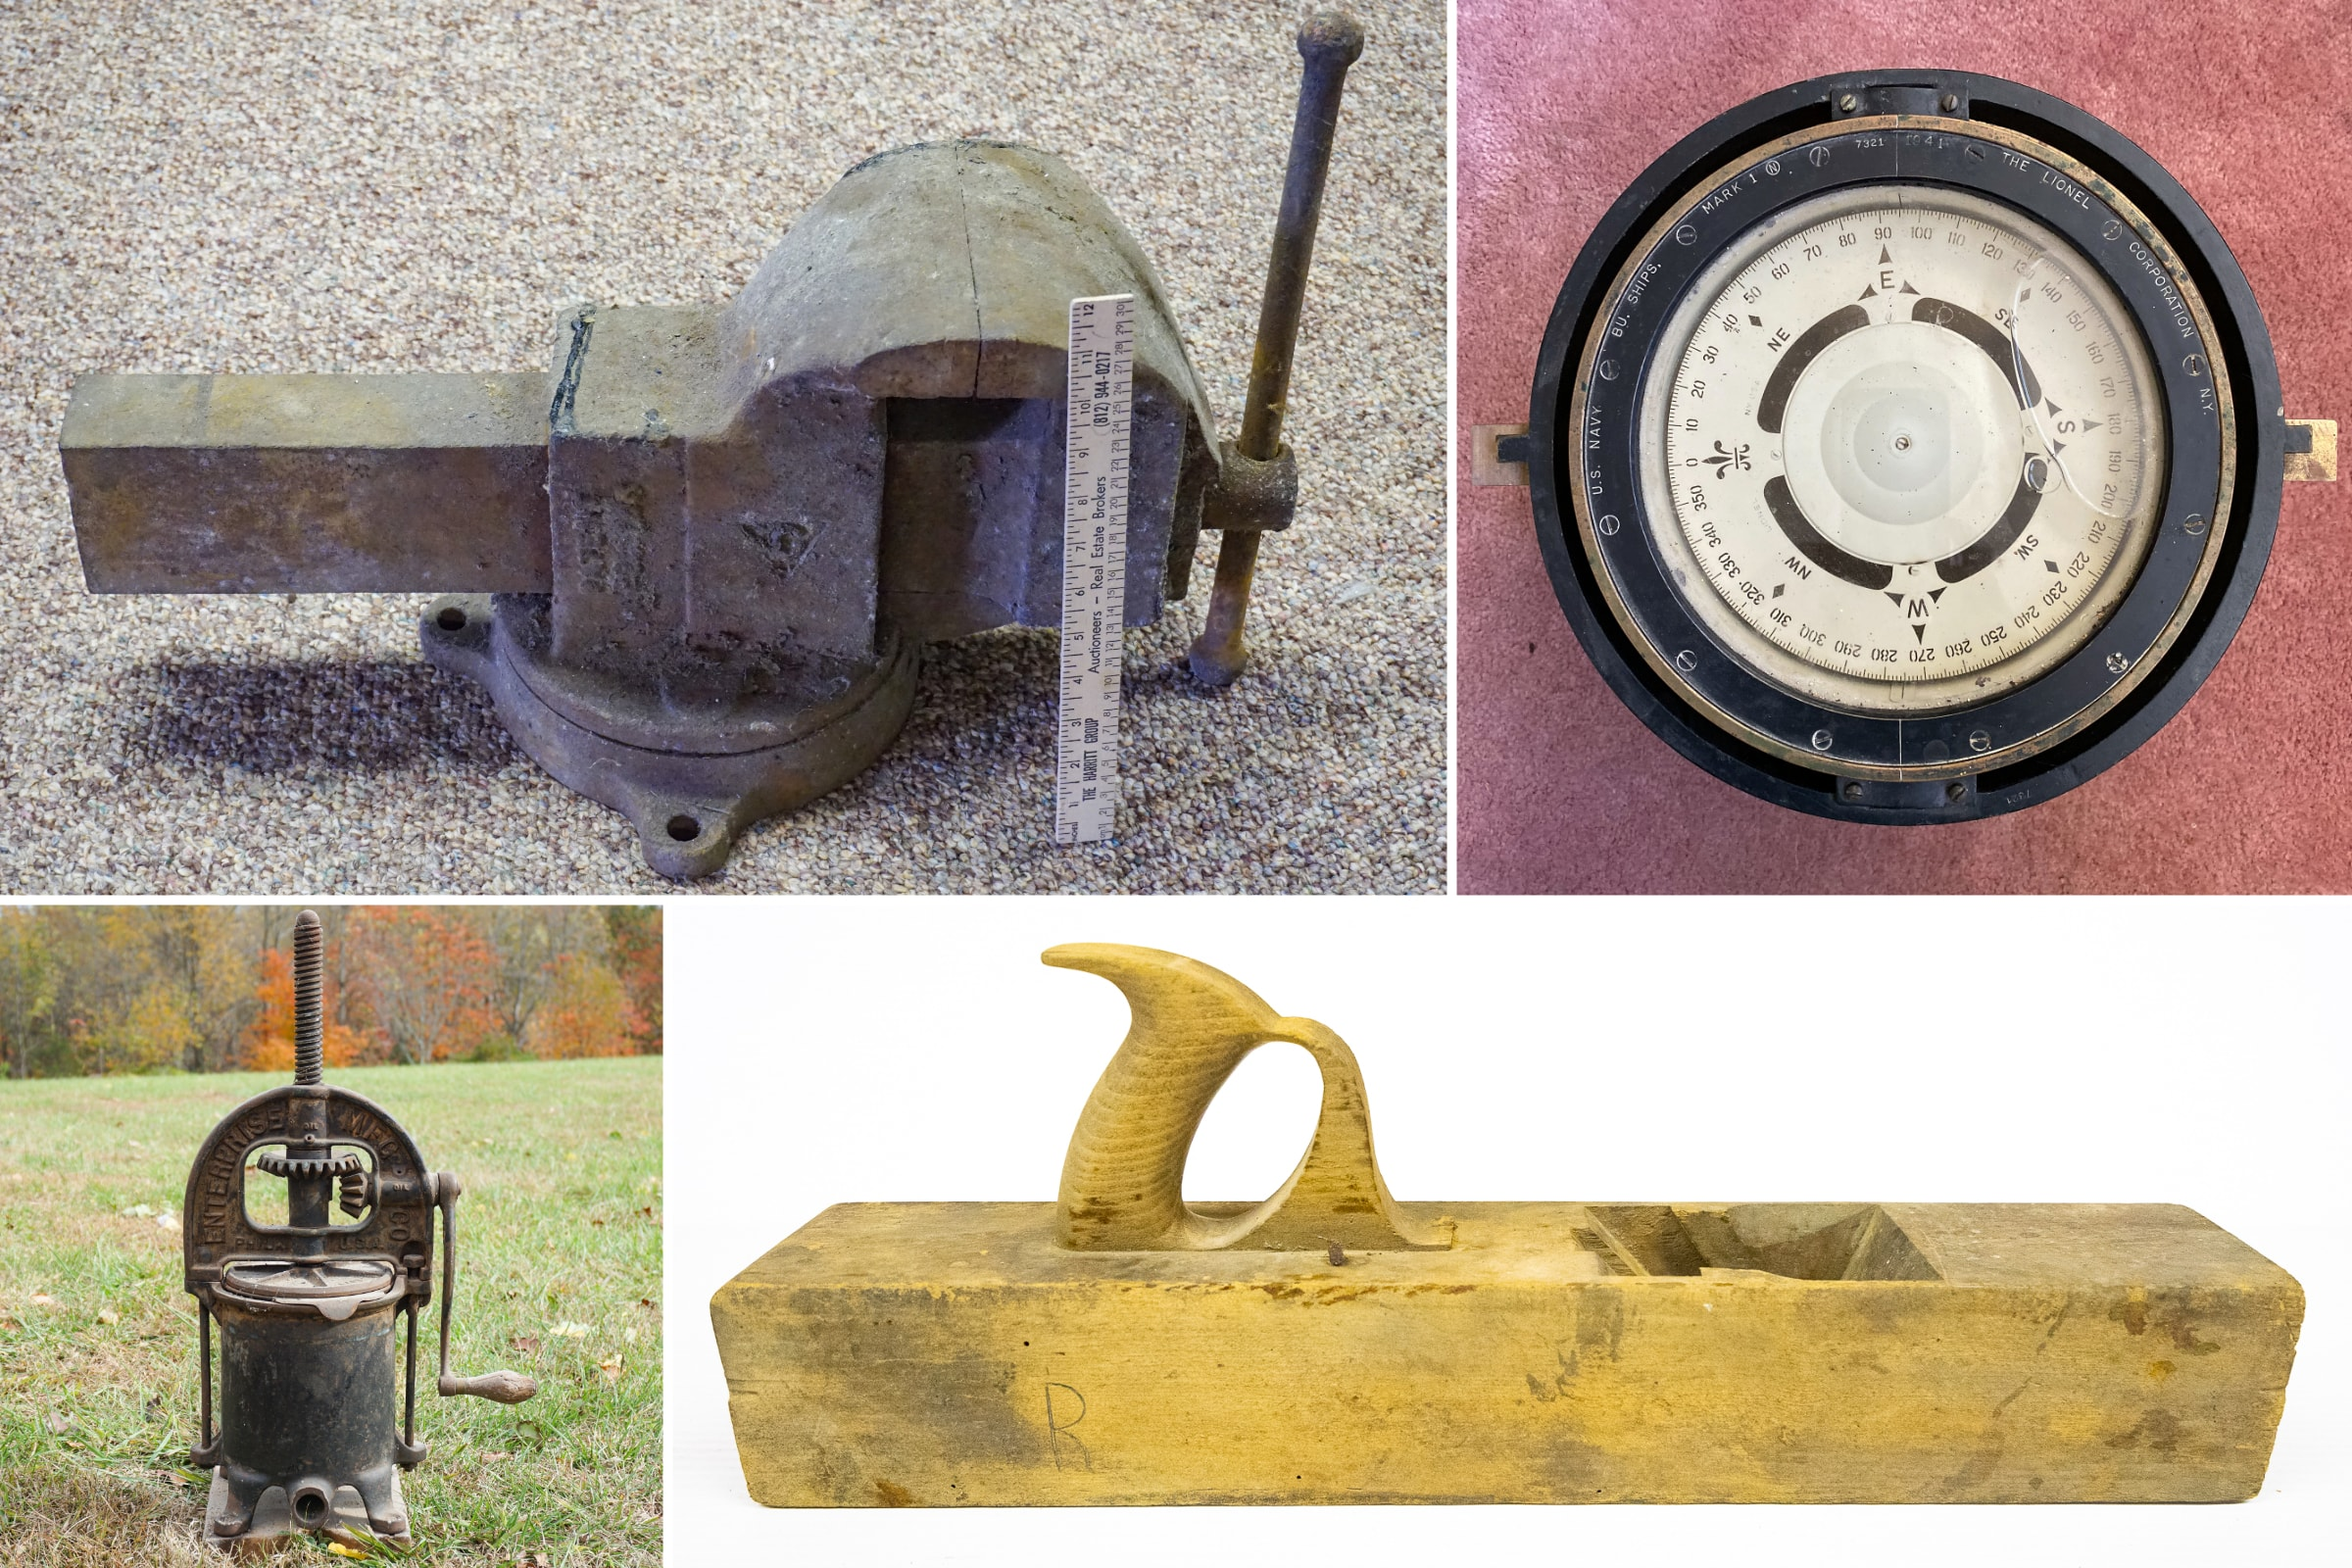 Fosskuhl Antique Tools & Contents Auction